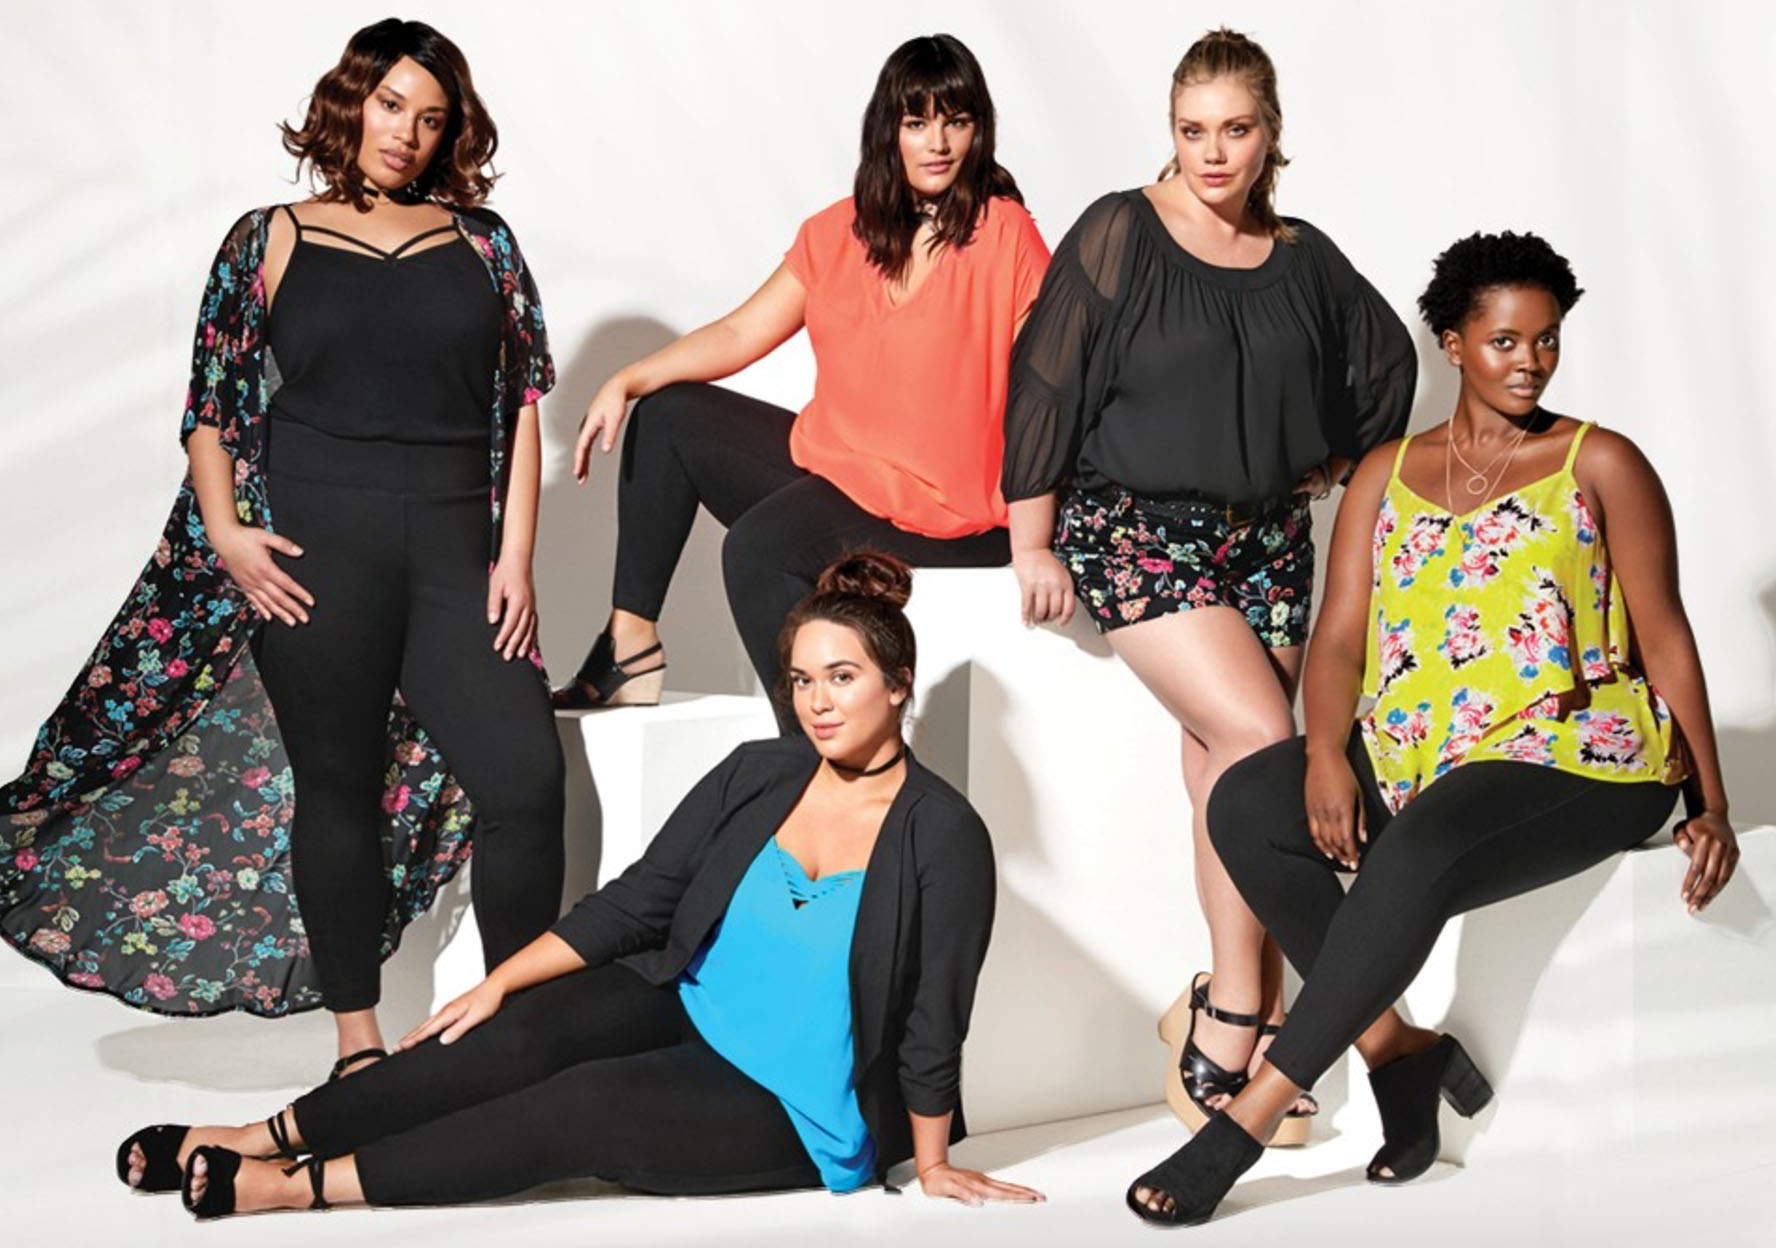 85ec6c8585b Finally! 37 Plus-Size Fashion Sites That Don t Suck - theFashionSpot